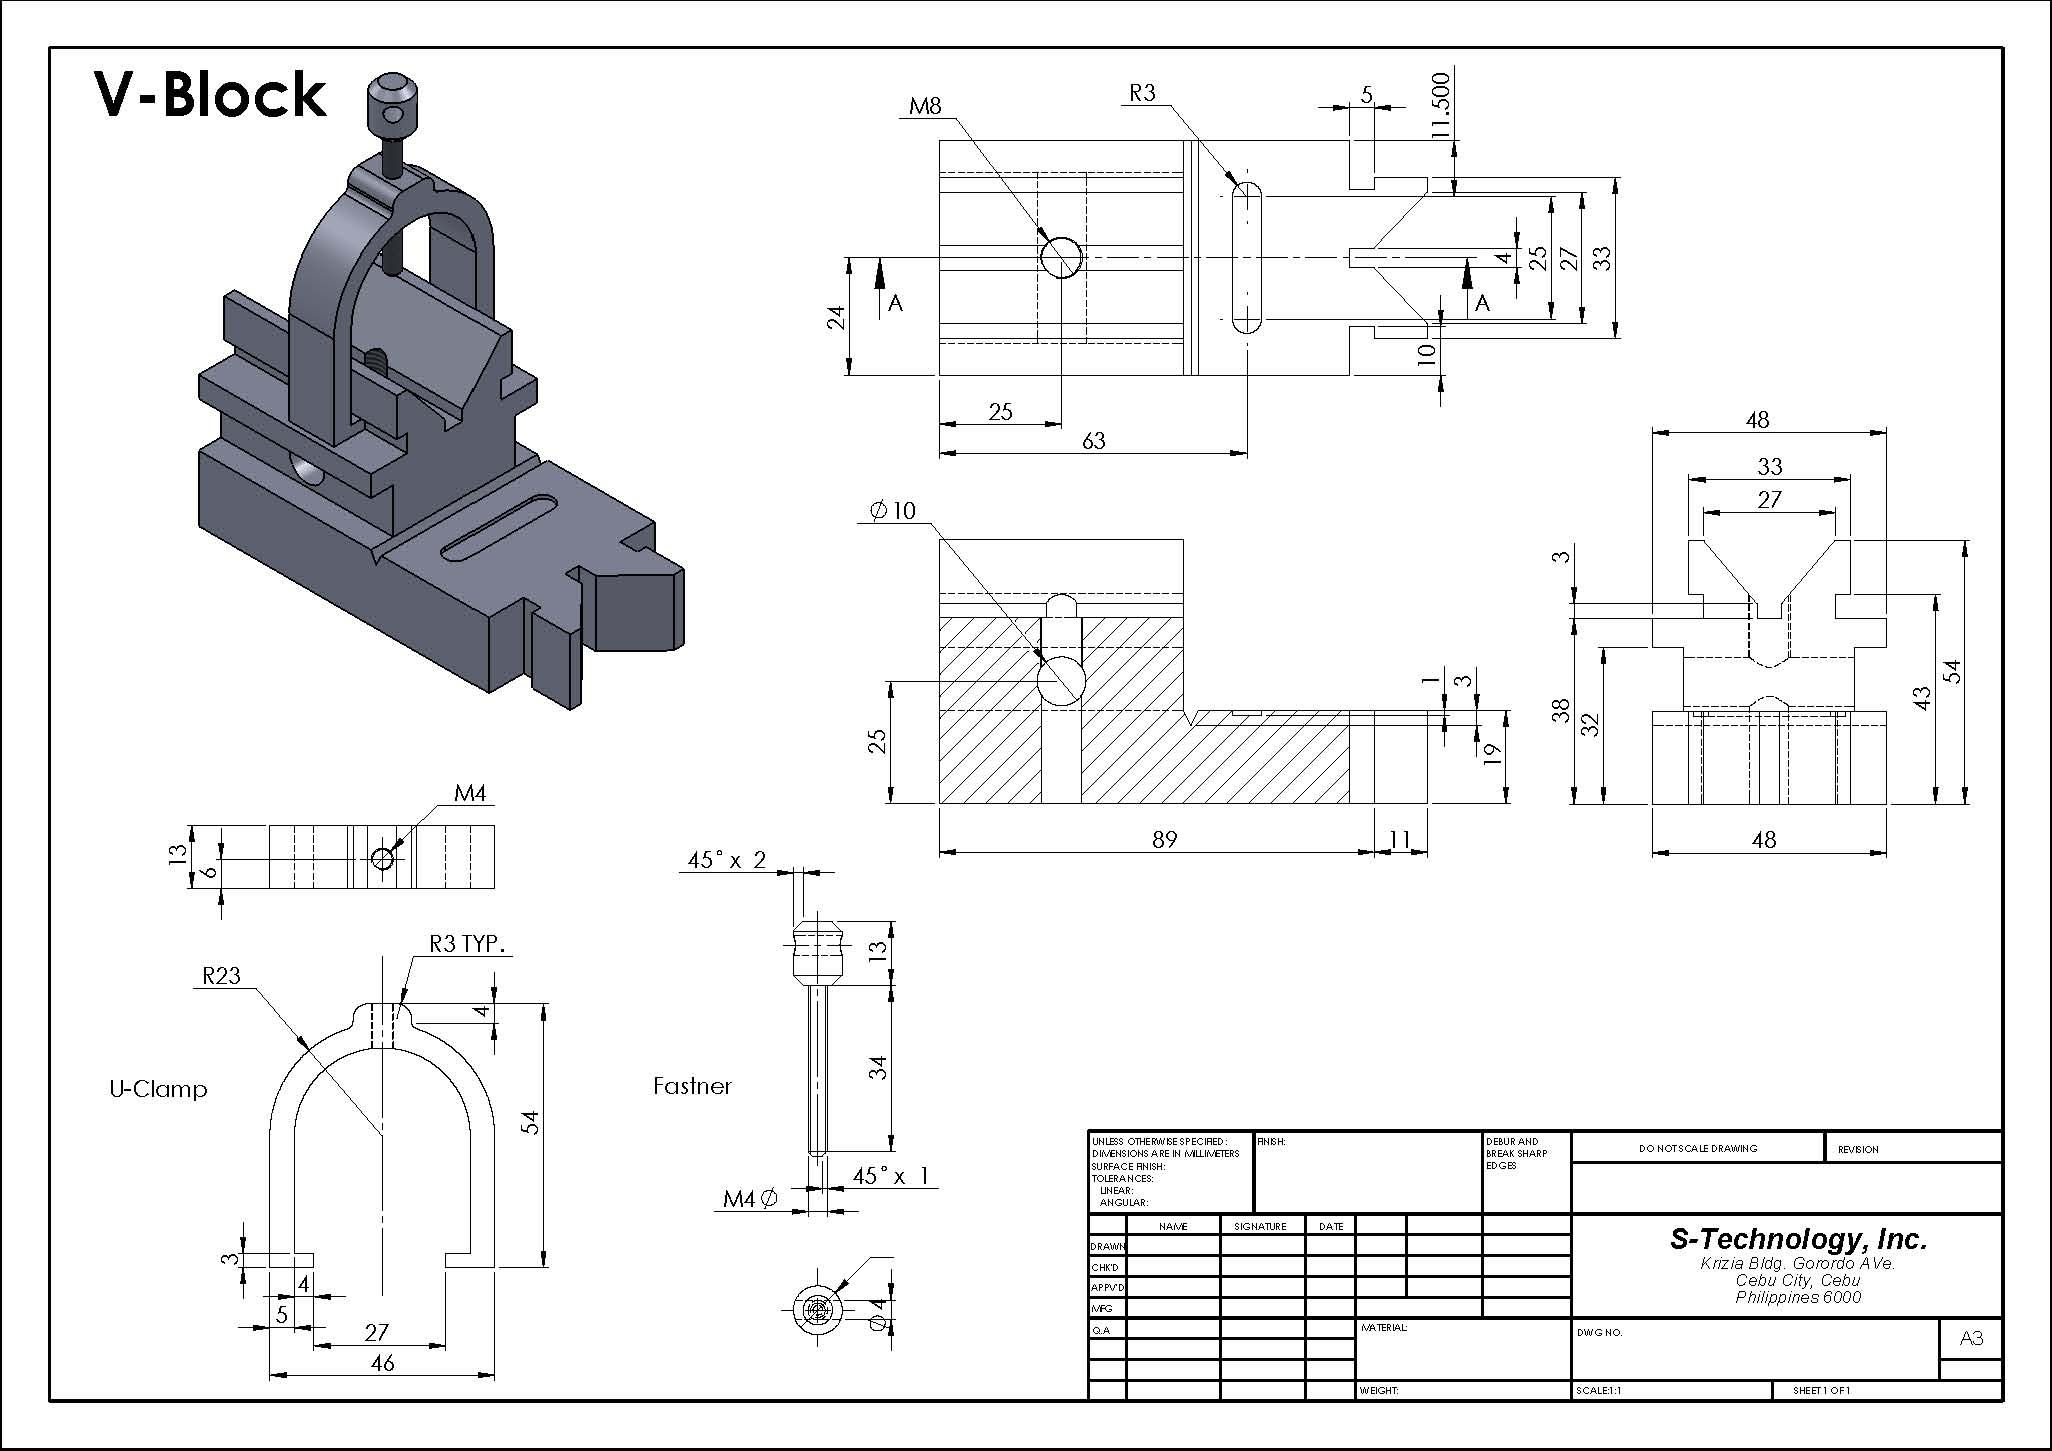 Related Image Mechanical Engineering Design Mechanical Design Technical Drawing